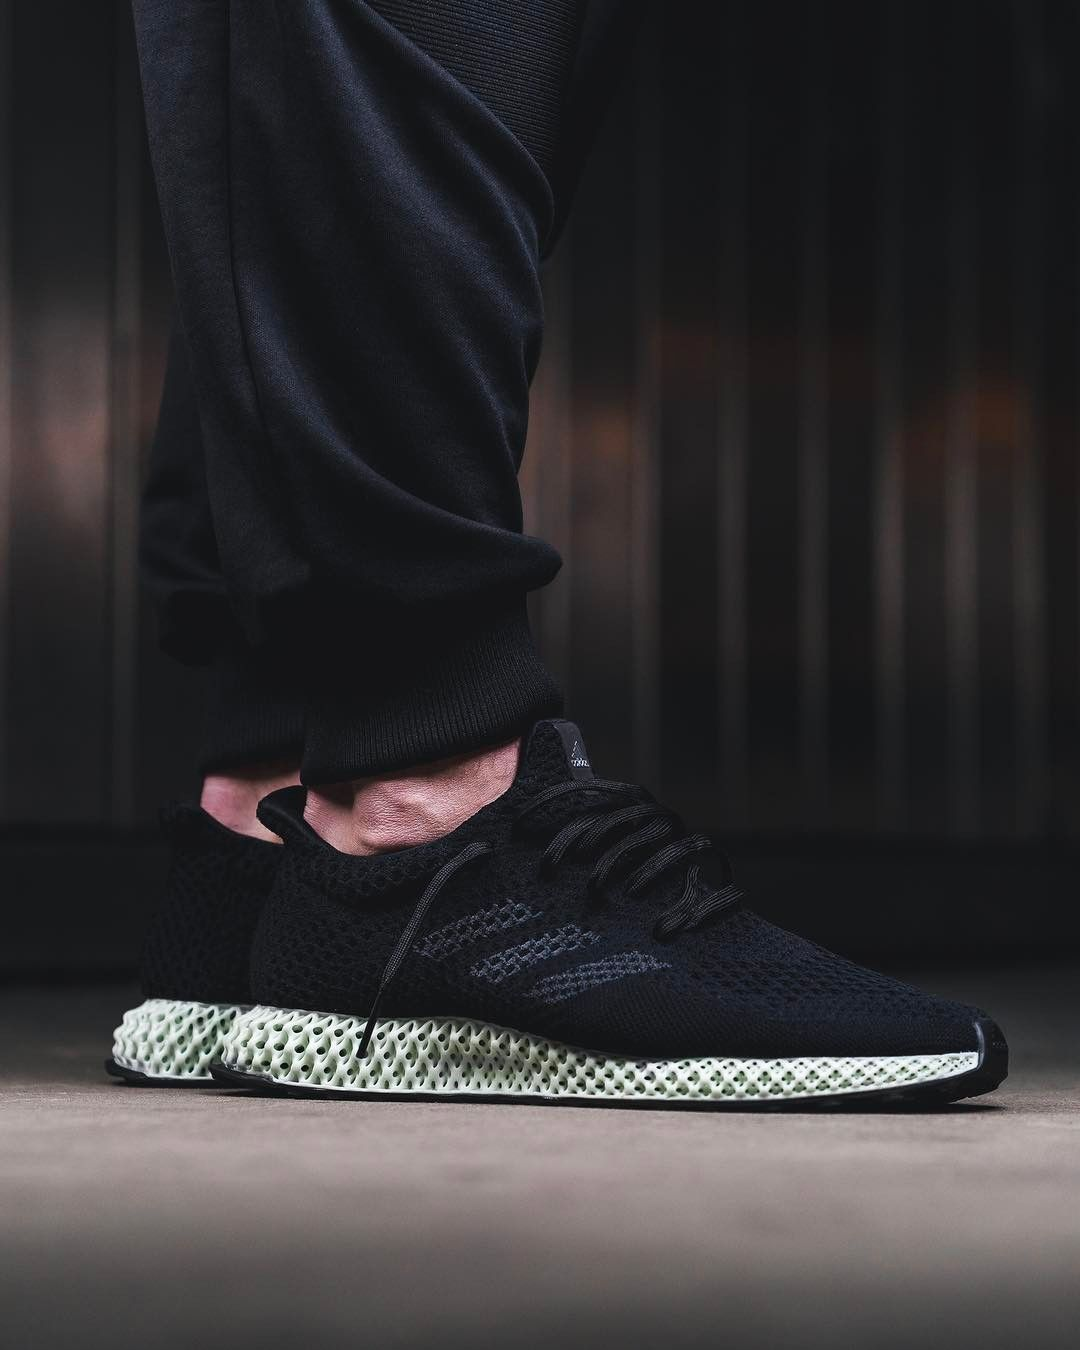 best authentic ed93f fba71 Adidas Futurecraft 4D. 3D printed soles with primeknit upper sneakers.  Sneakerheads, sneaker society, kick nation, kick society